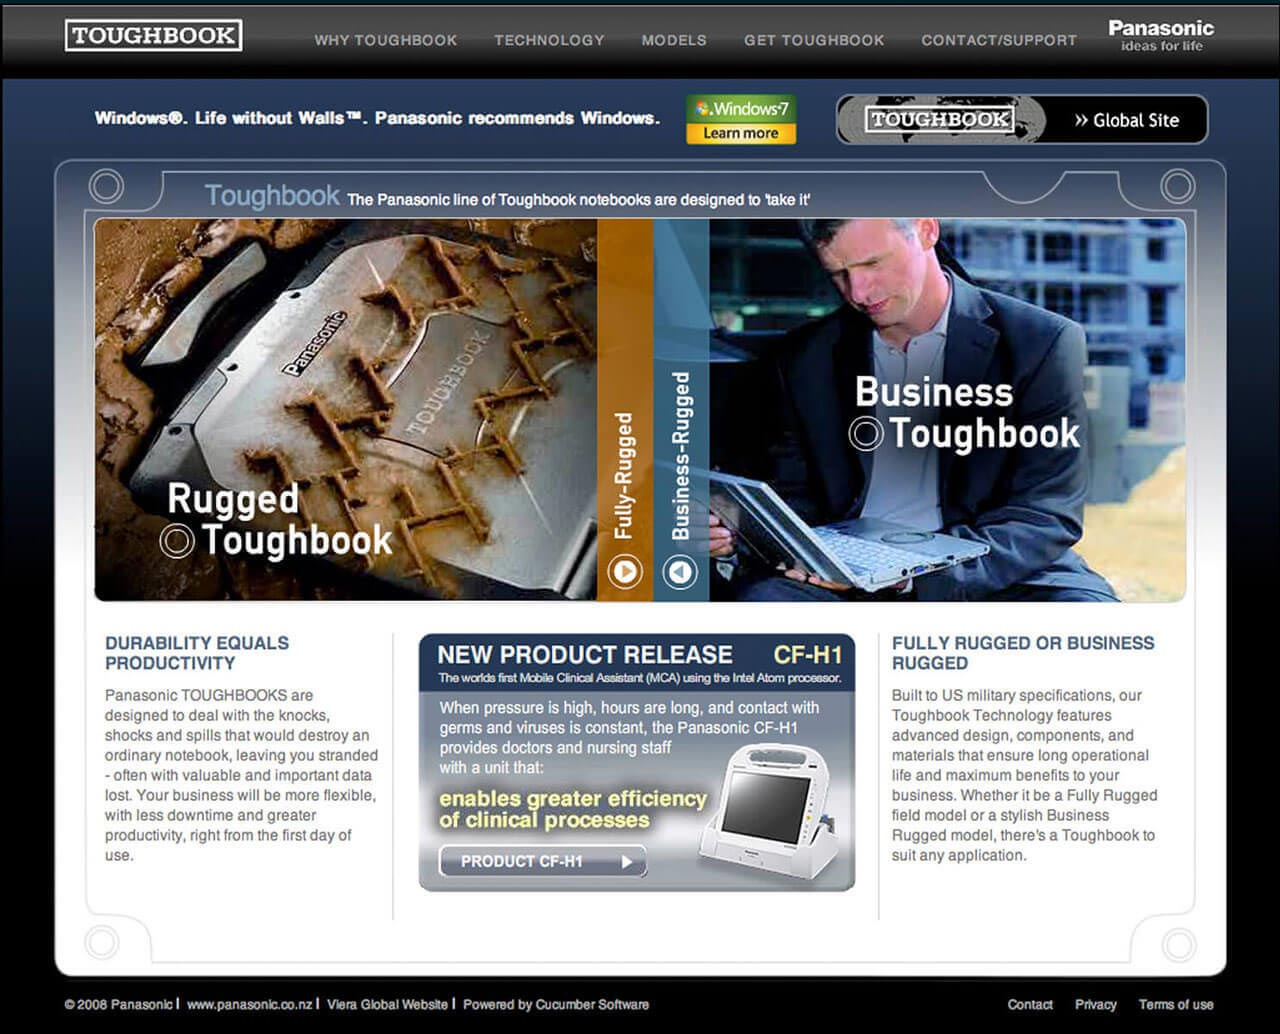 Toughbook-site-image